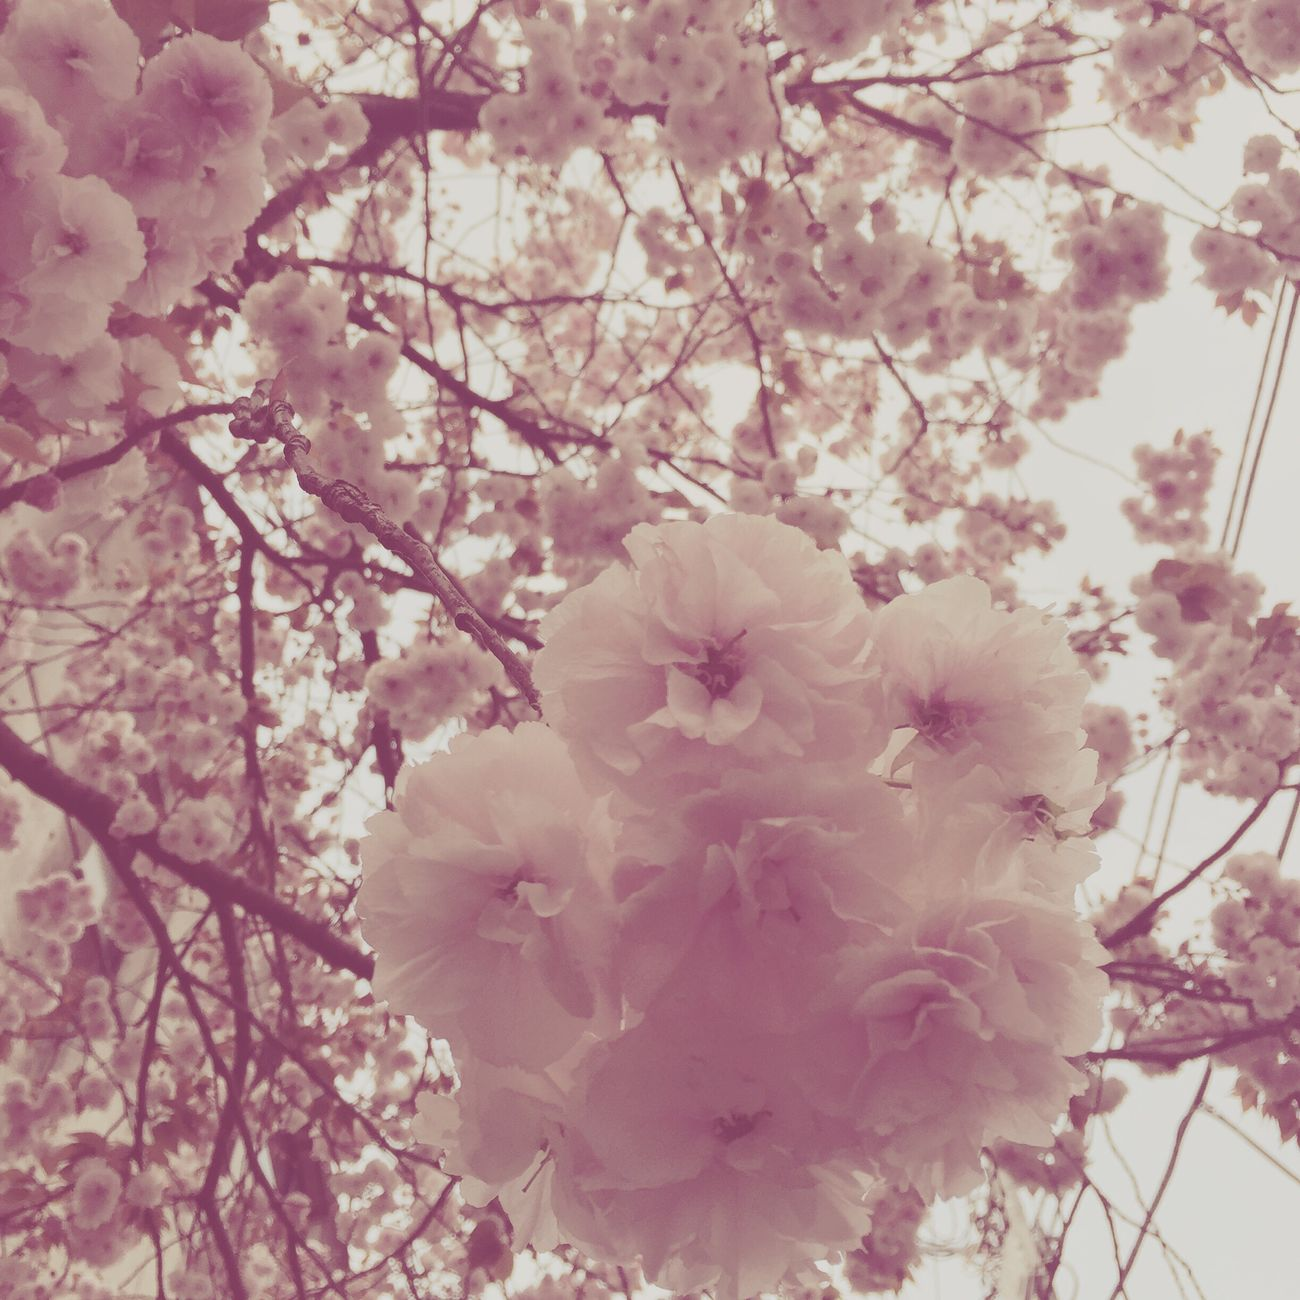 Cherry Blossoms Sakura Tokyo Japan Japanese Culture Spring Spring Flowers Pink Pink Flowers First Eyeem Photo